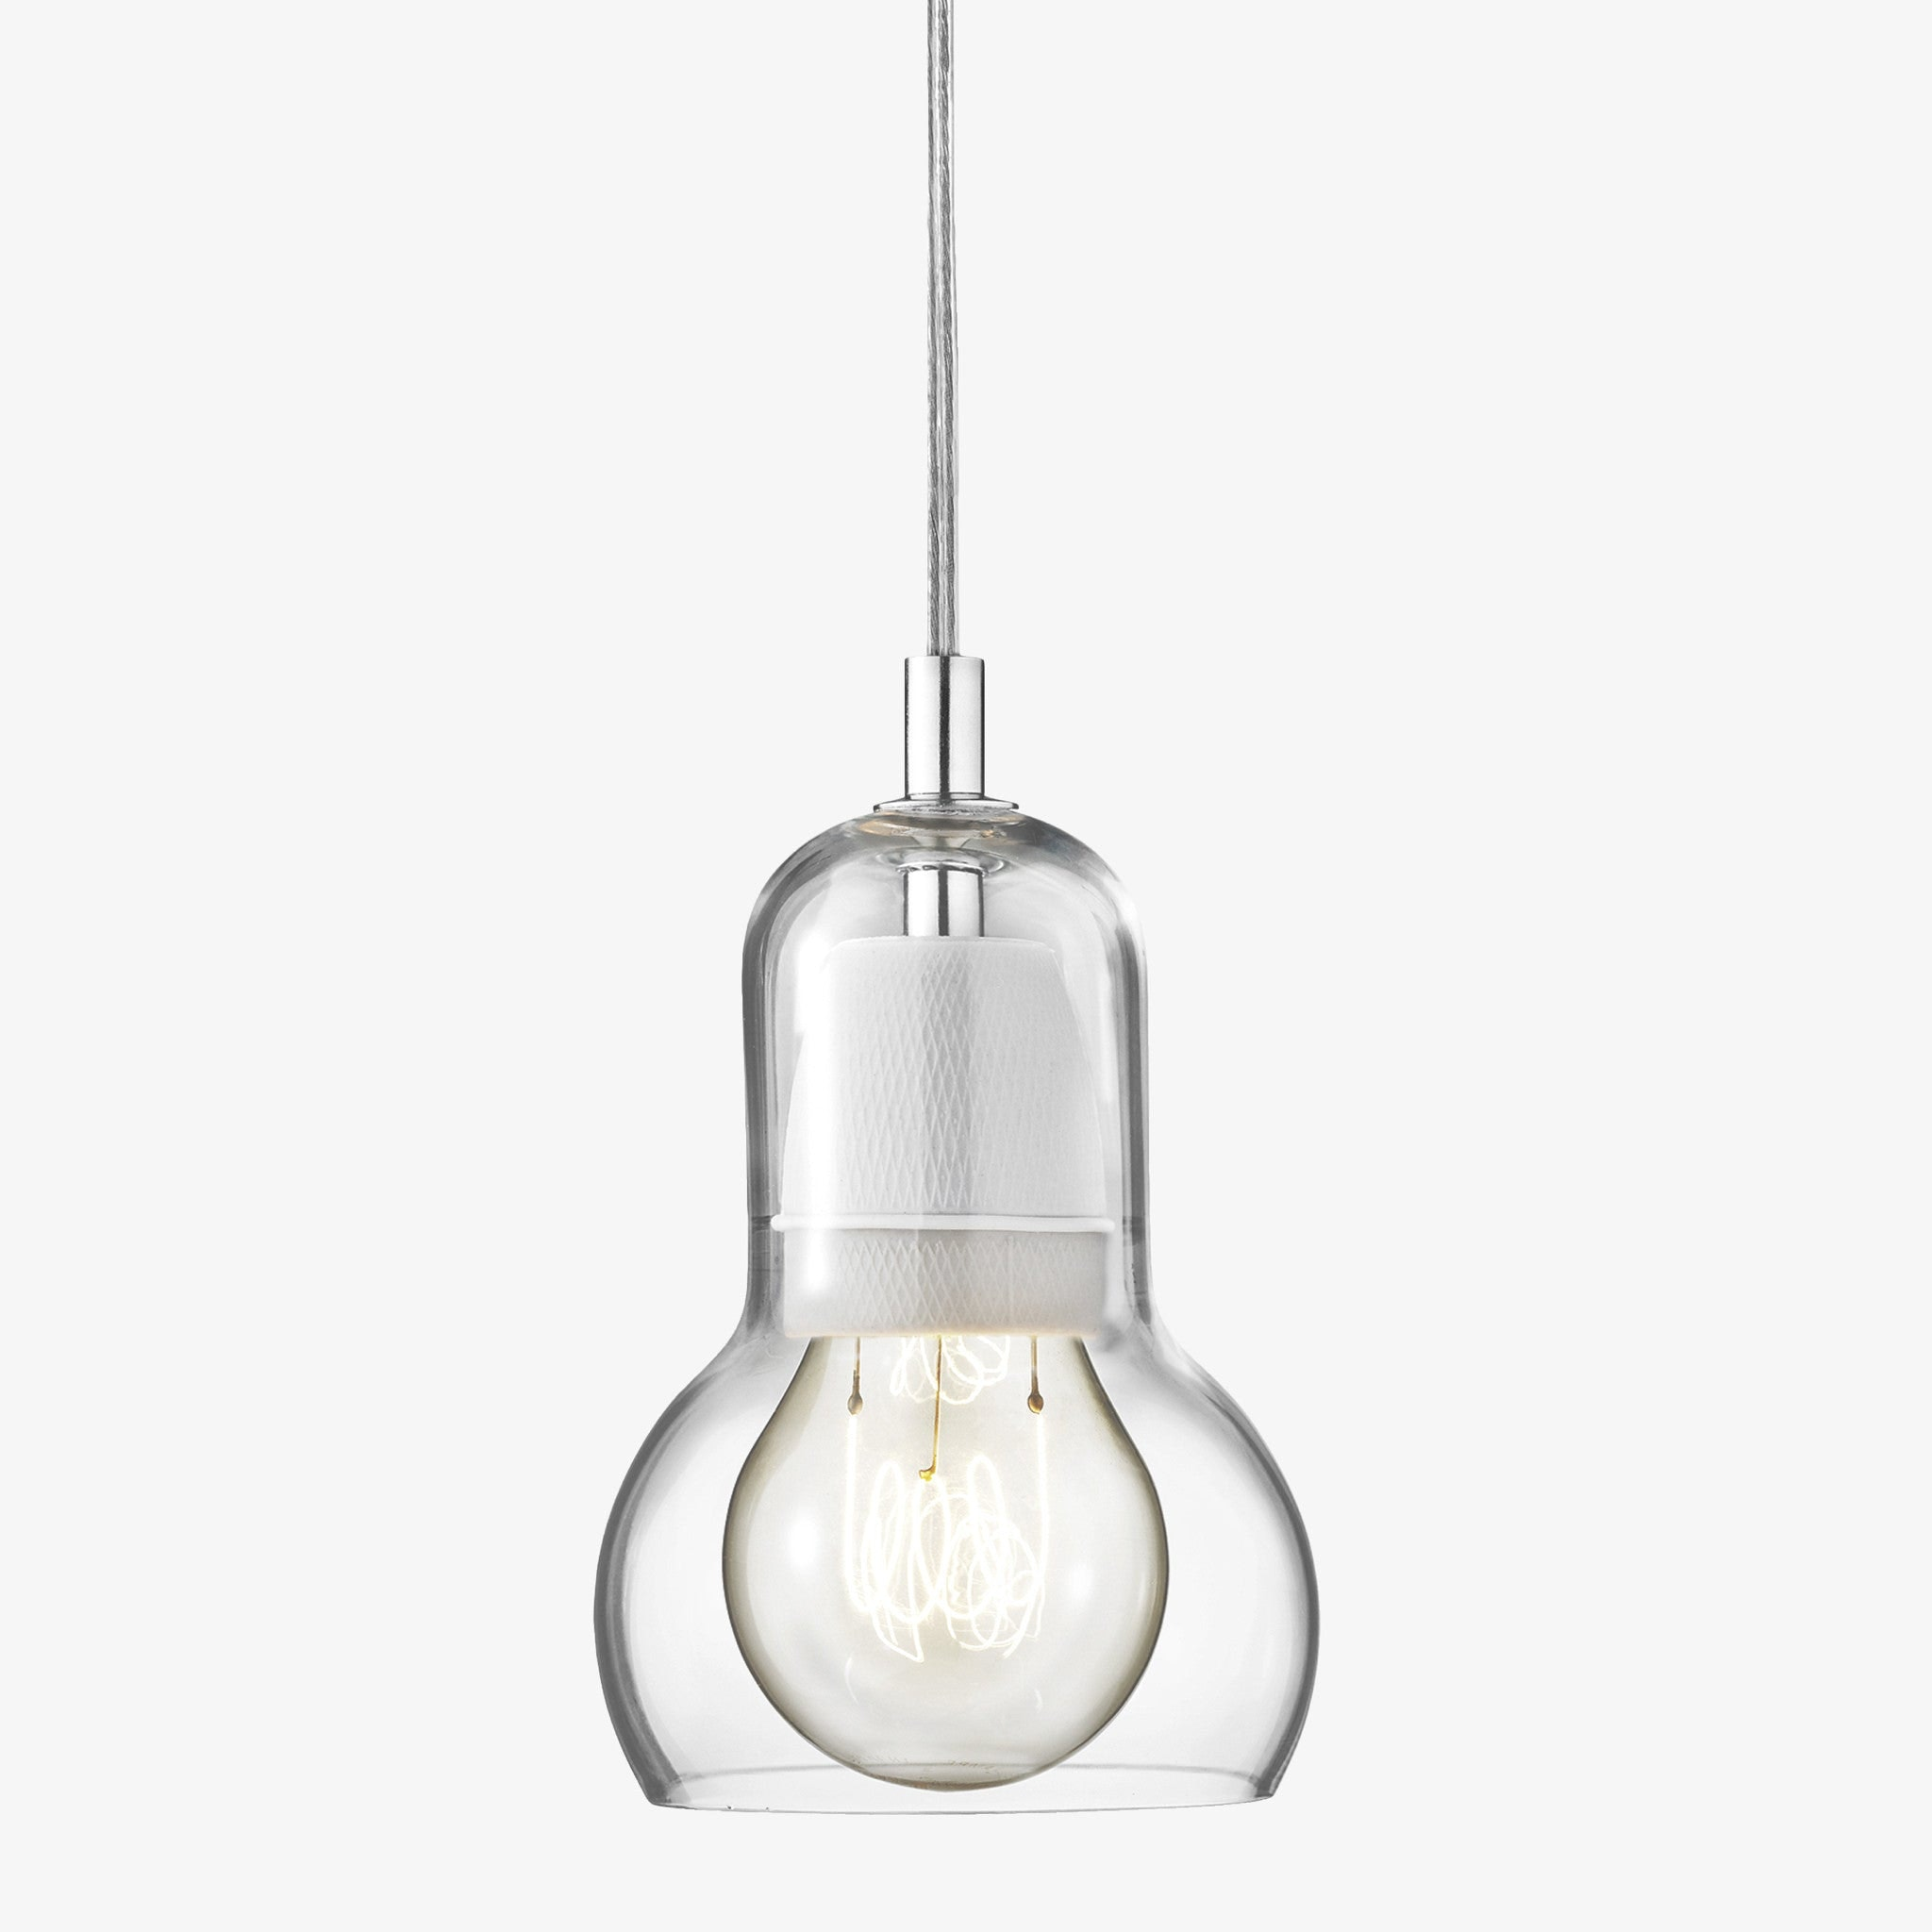 Bulb Pendant SR1 by Sofie Refer